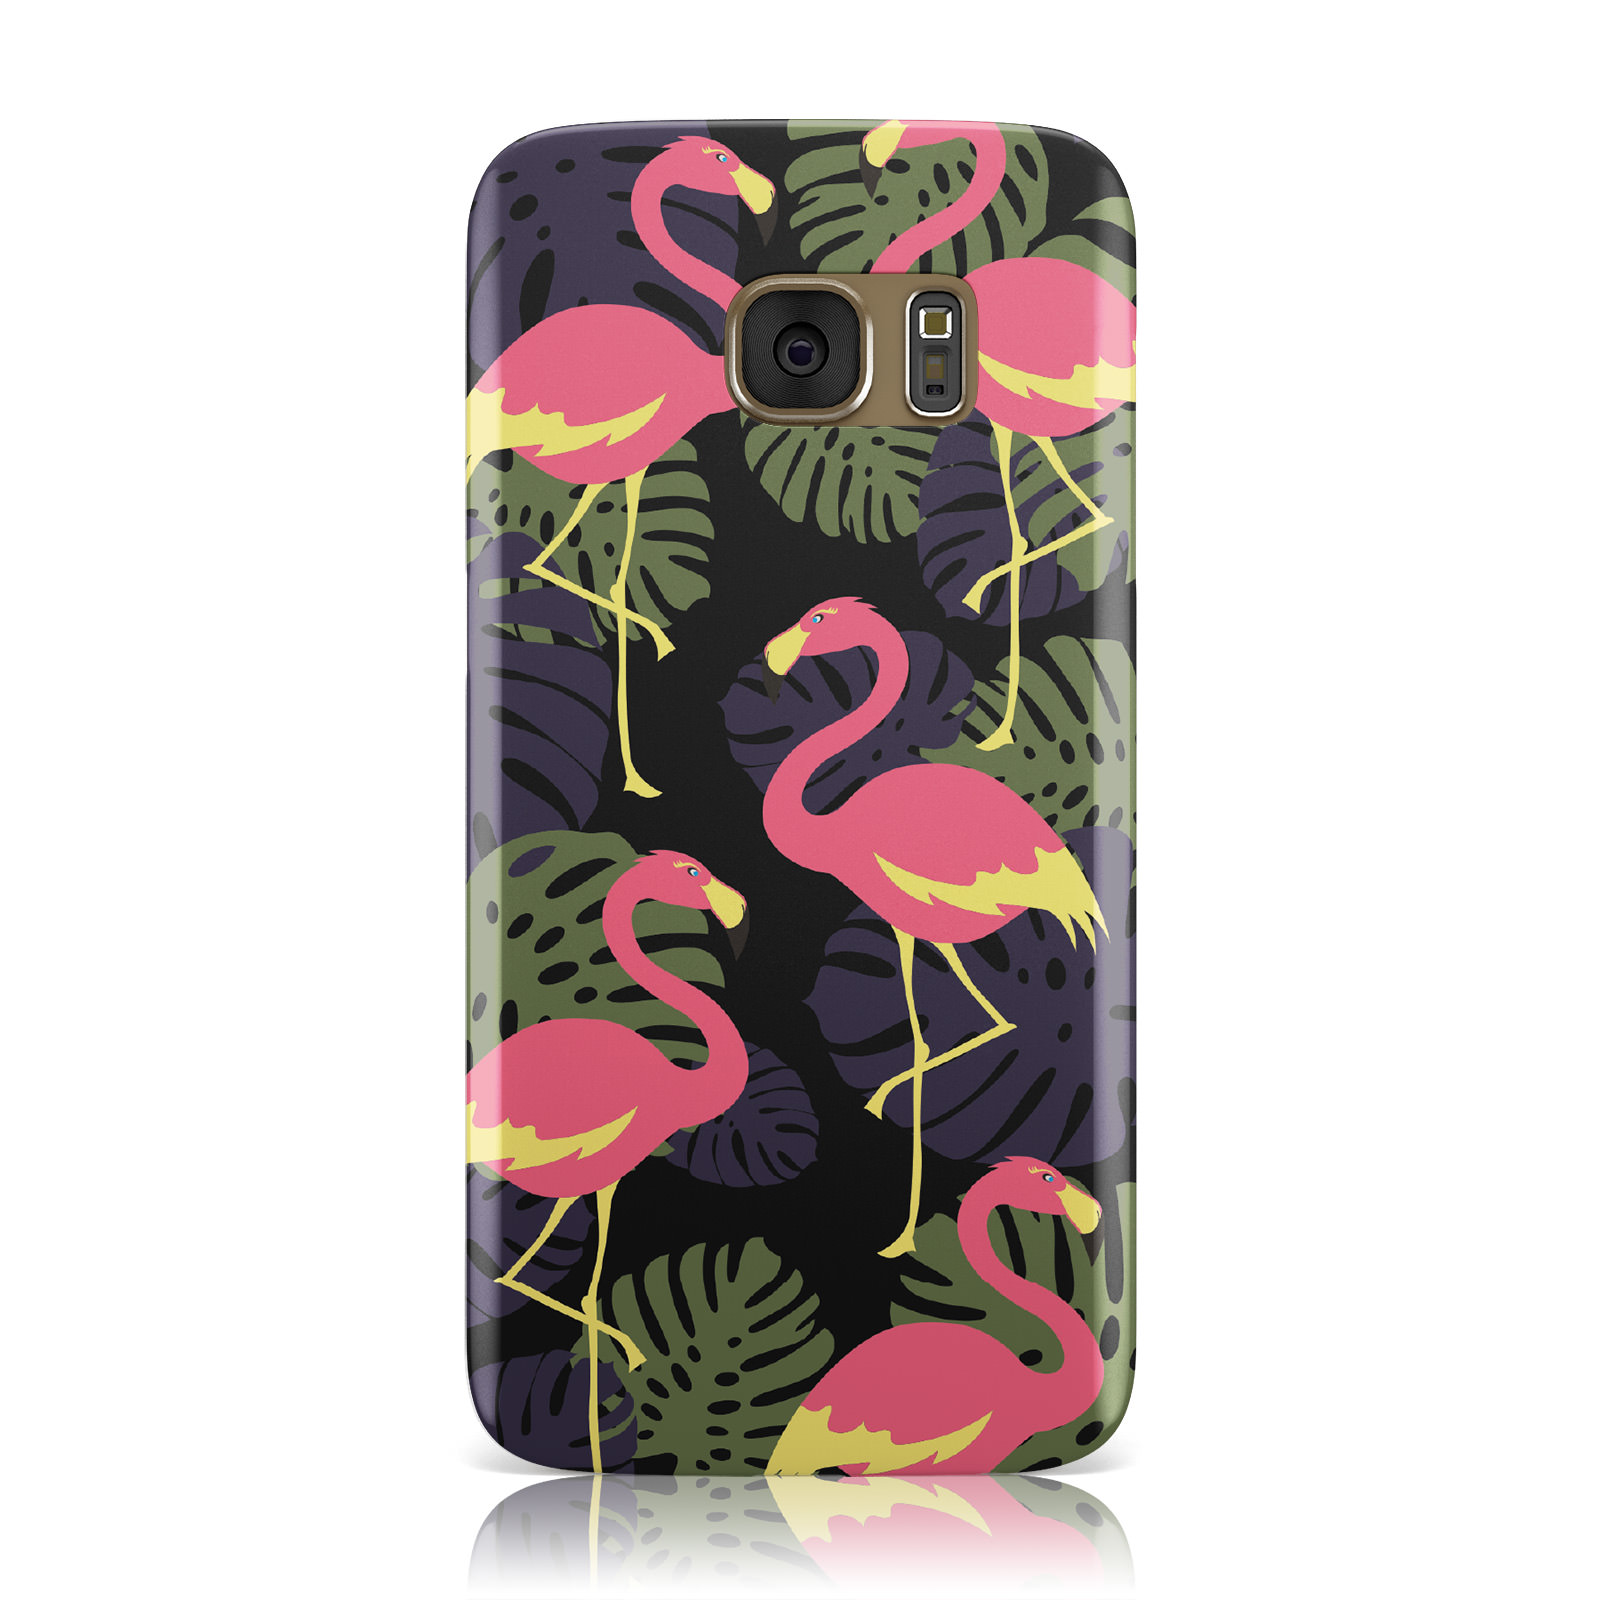 FLAMANT-ROSE-COLLECTION-ETE-COQUE-RIGIDE-POUR-SAMSUNG-GALAXY